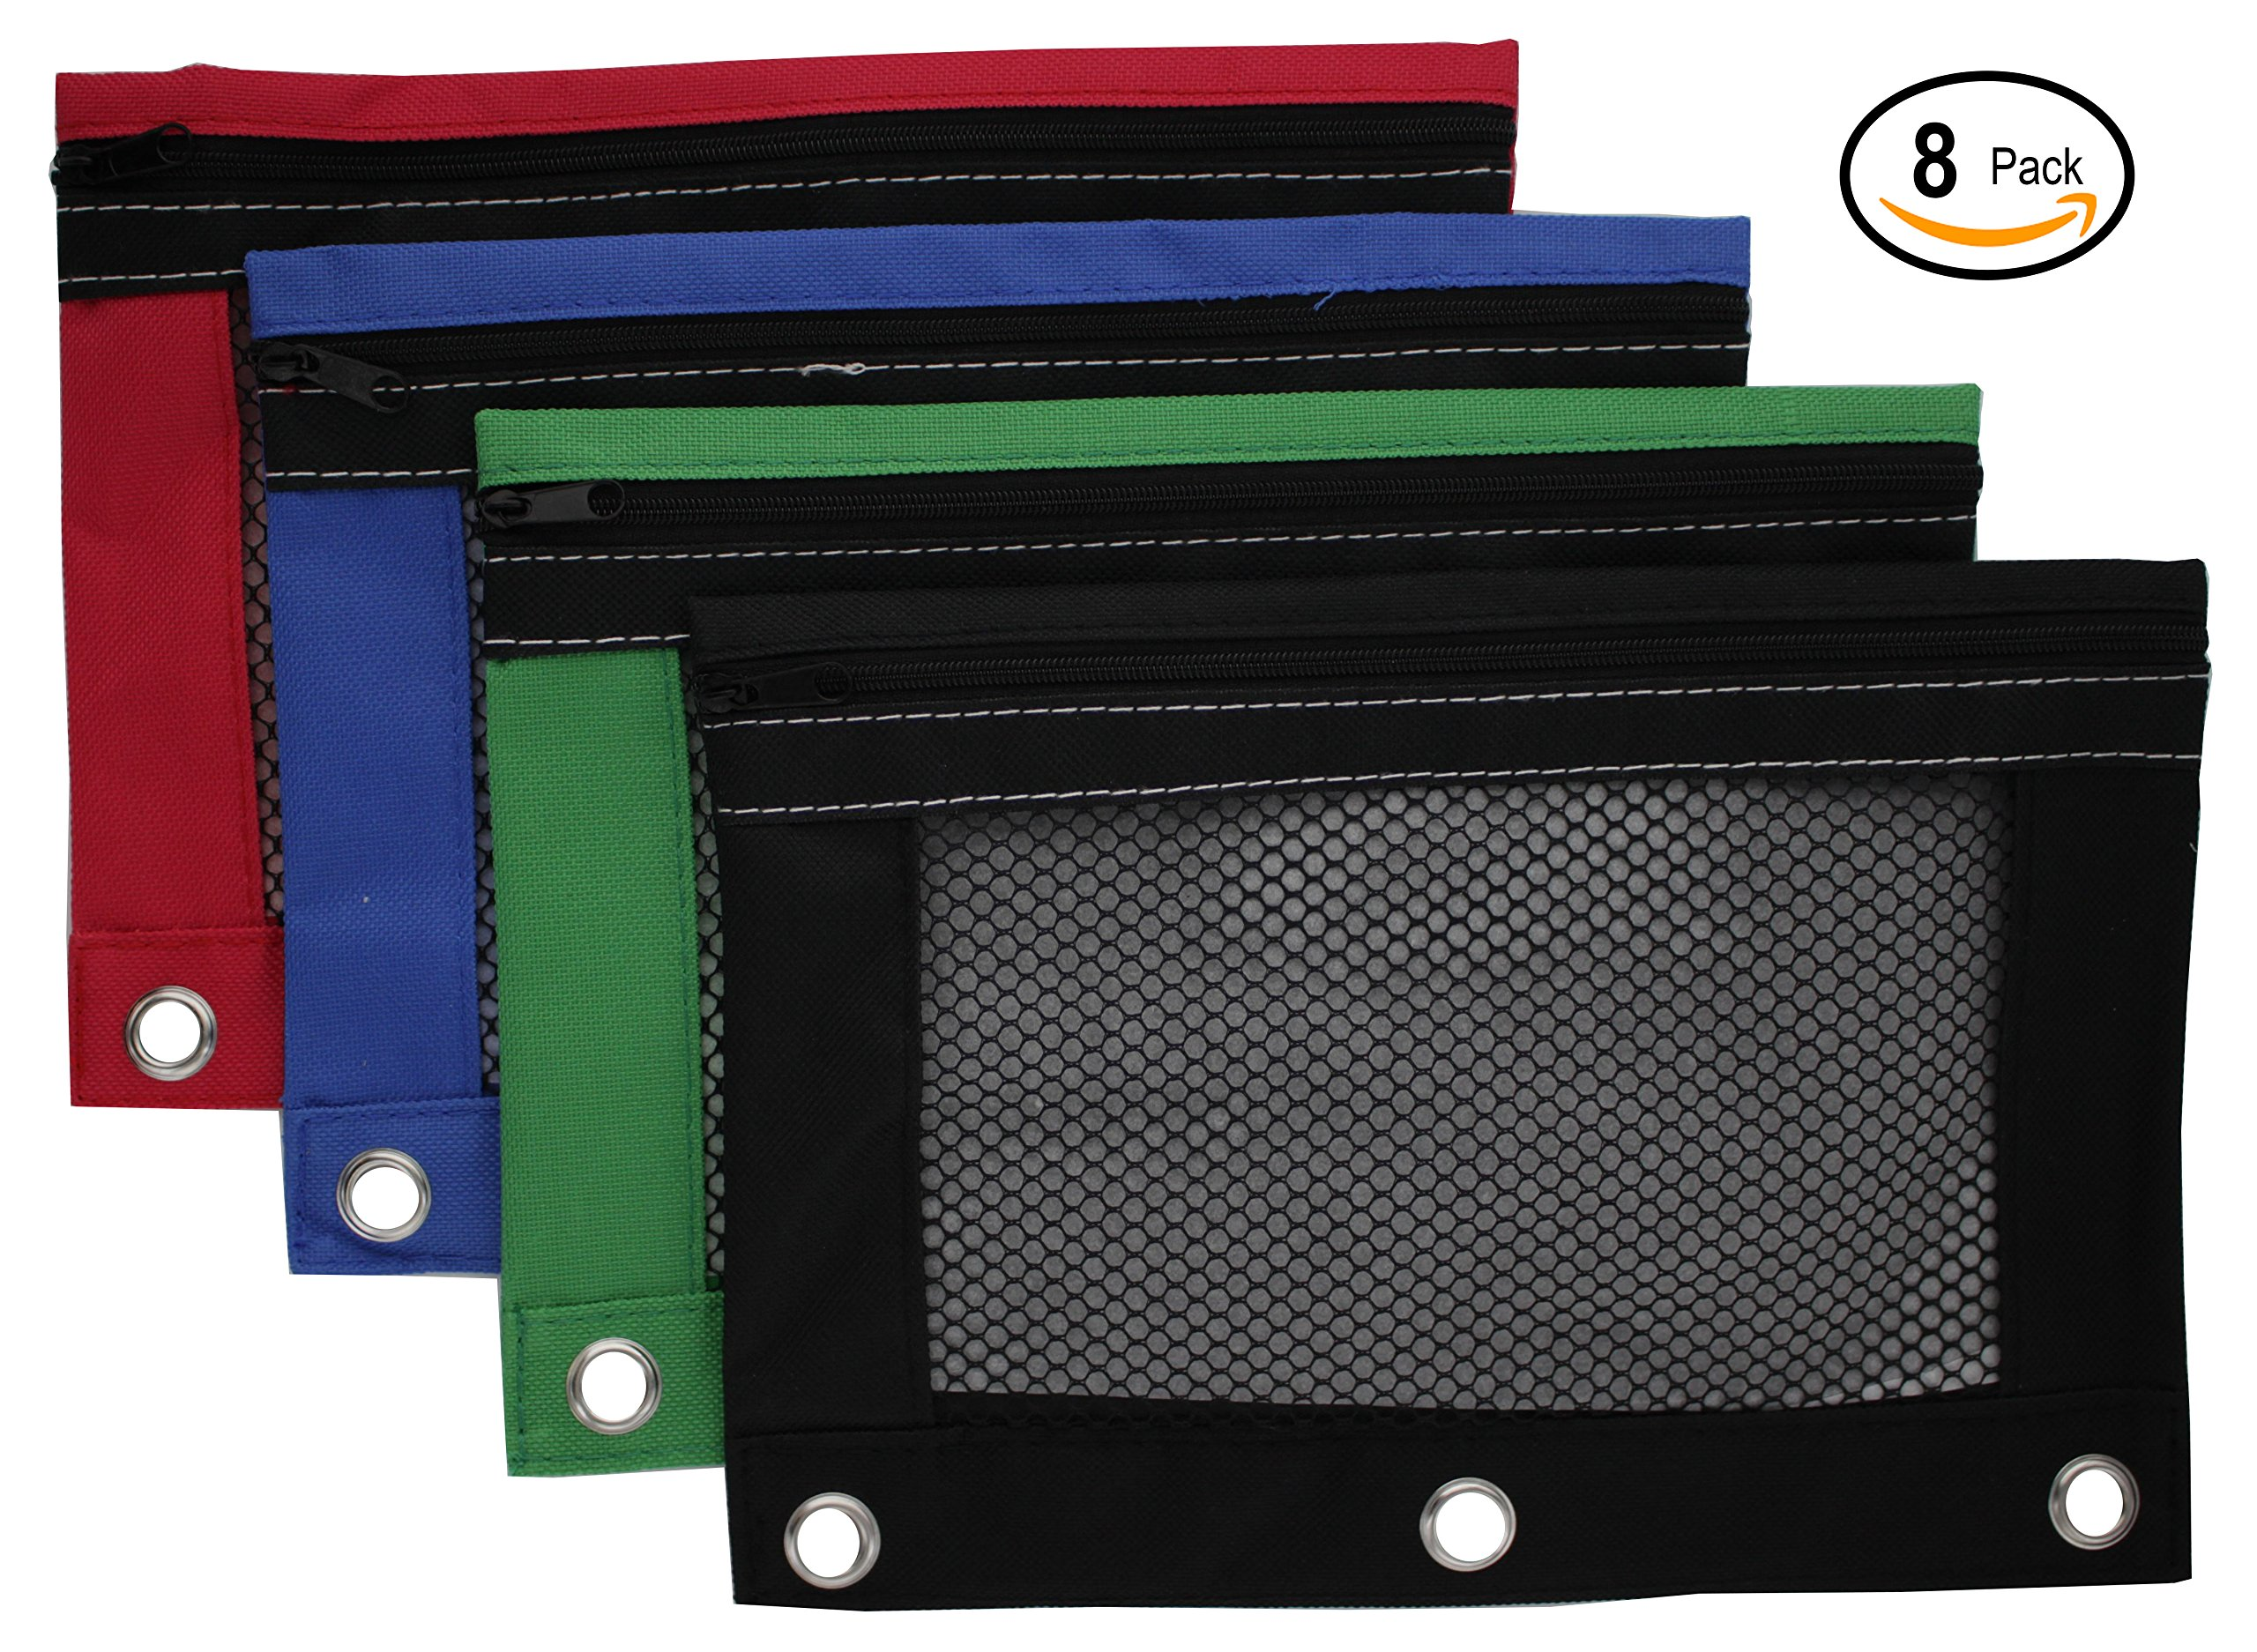 Emraw Zippered Pencil Pouches with 3-Ring Grommet Holes & Quick View Mesh Pocket - Colors Included: Black, Green, Red, Blue (8 Pack)